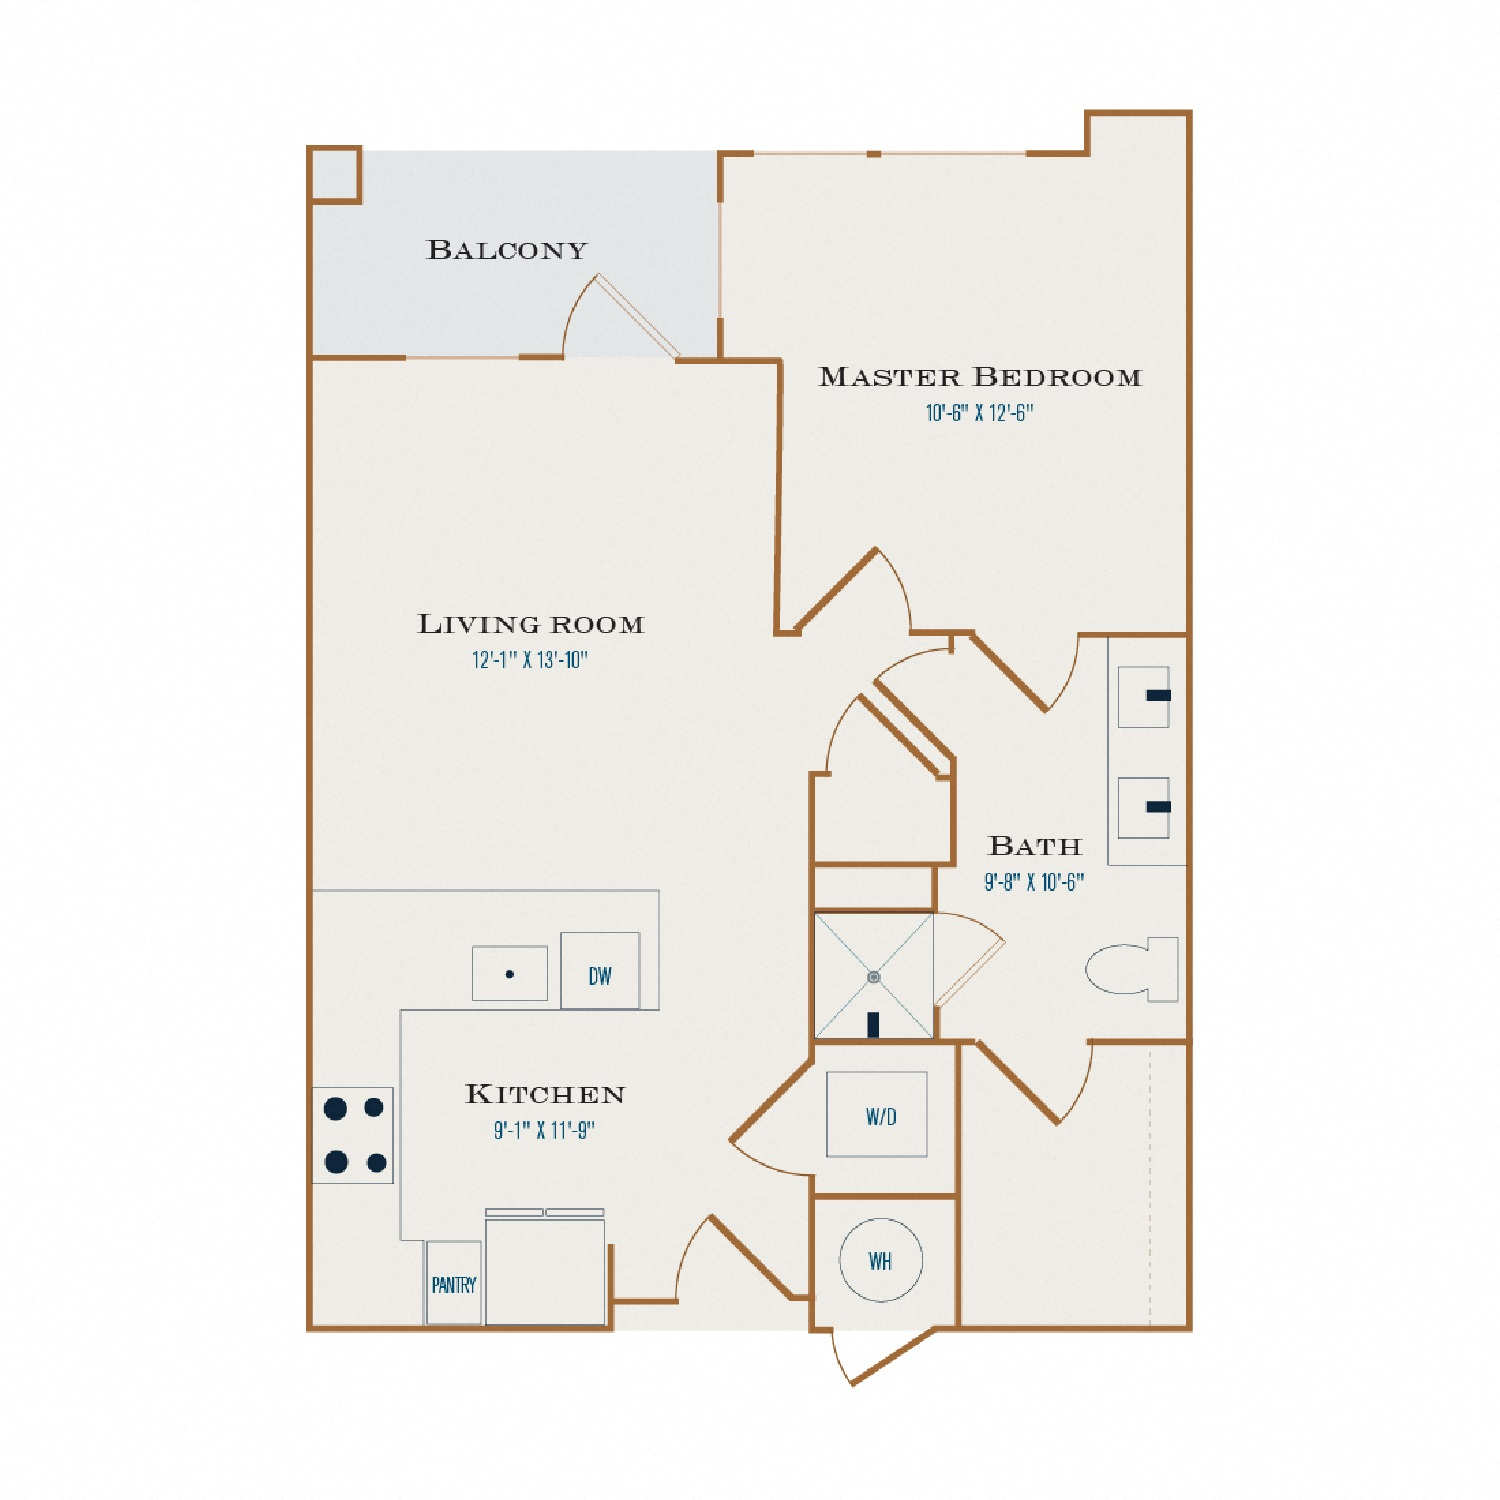 A Two floor plan diagram. One bedroom, one bathroom, an open kitchen and living area, a balcony, and a washer dryer.